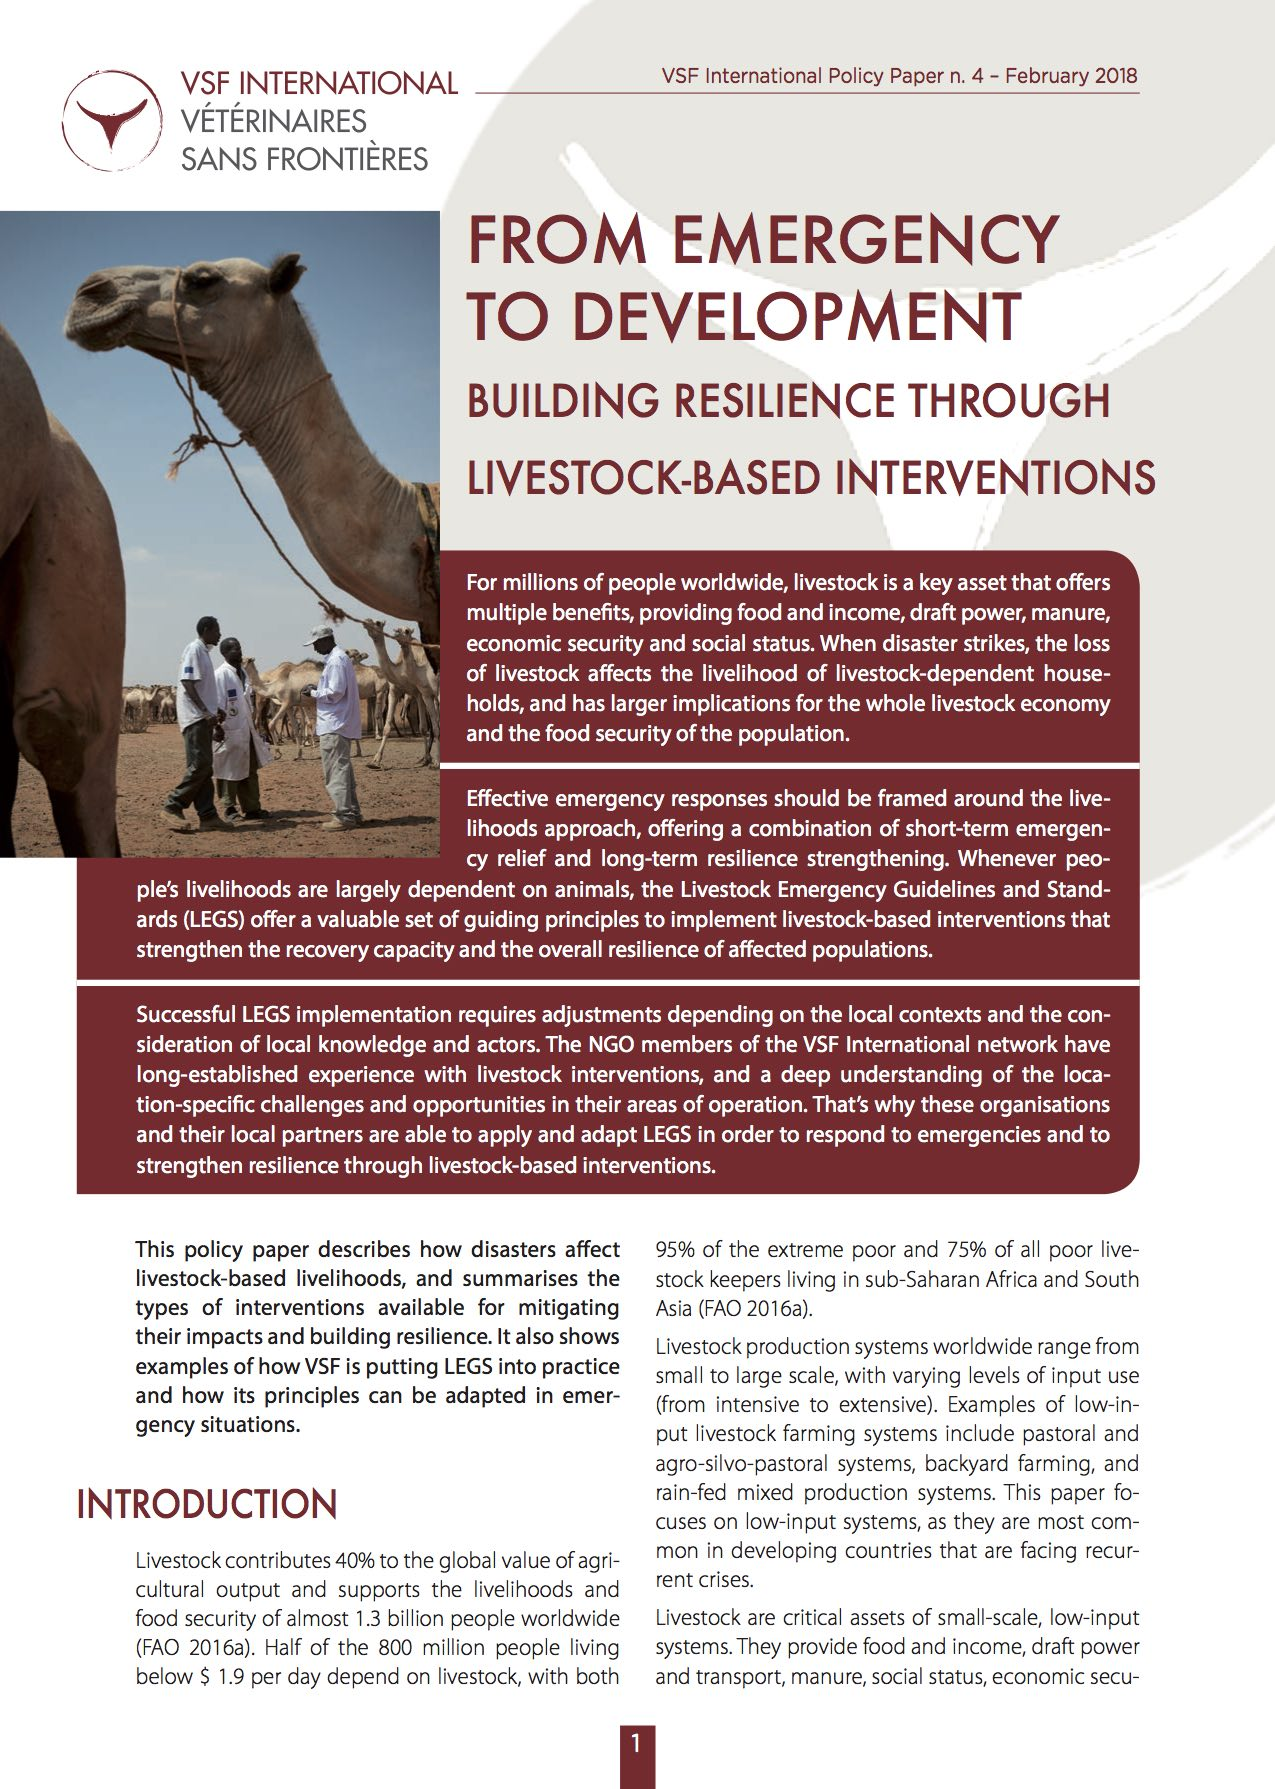 From emergency to development: building resilience through livestock-based interverventions Image principale